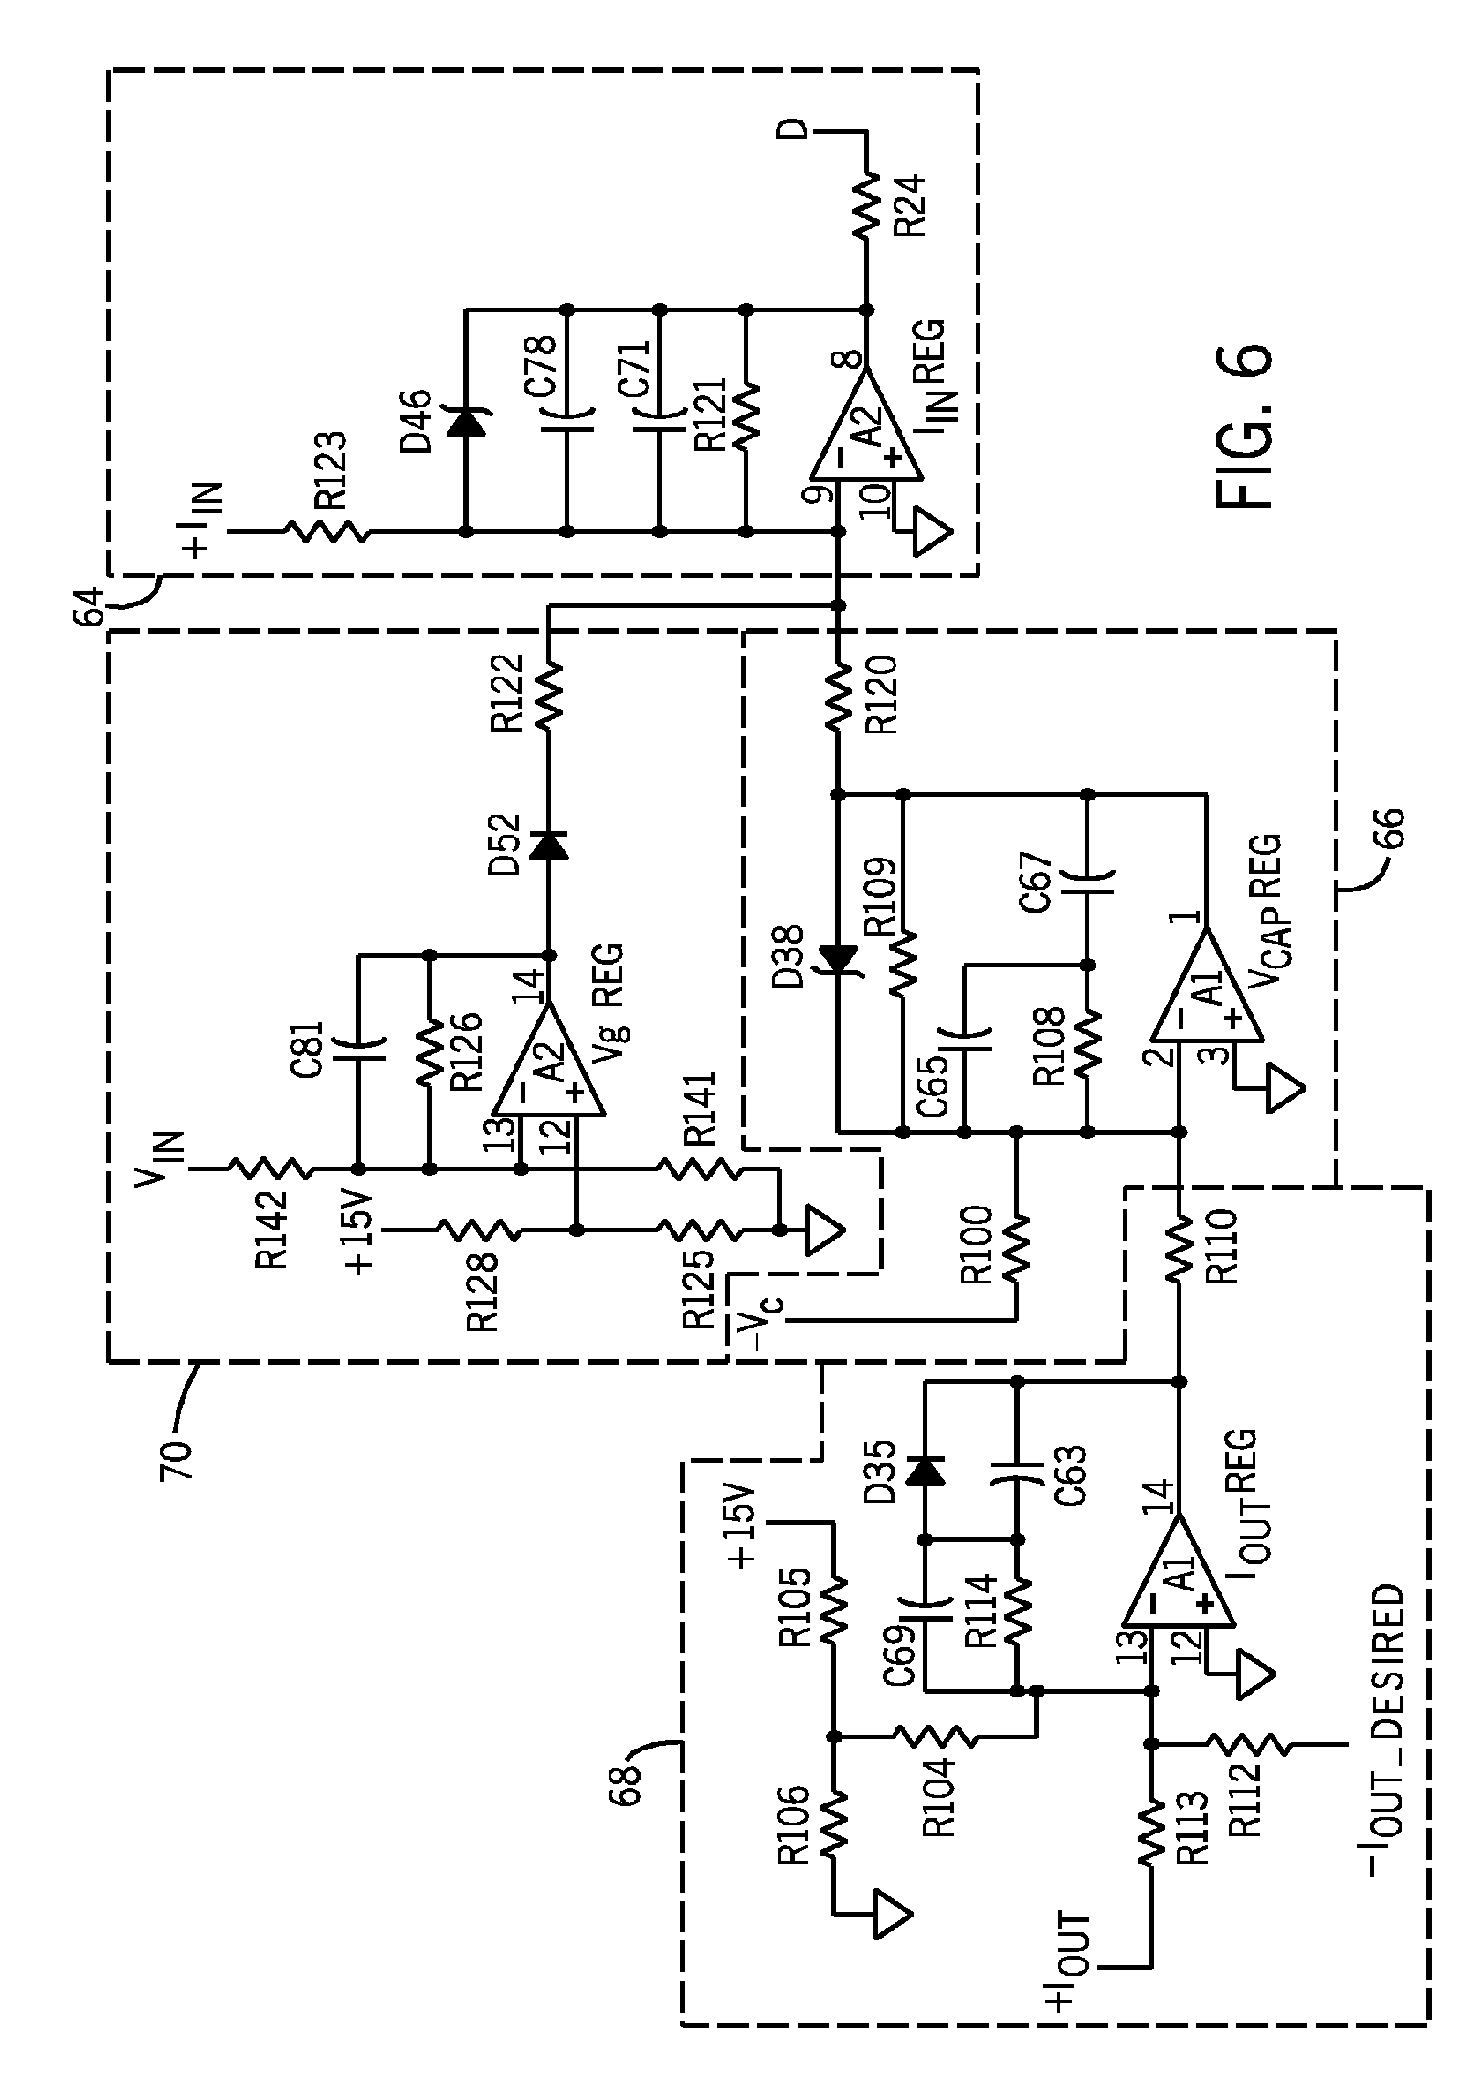 patent us20060231532 system and method for converting welding power to plasma cutting power